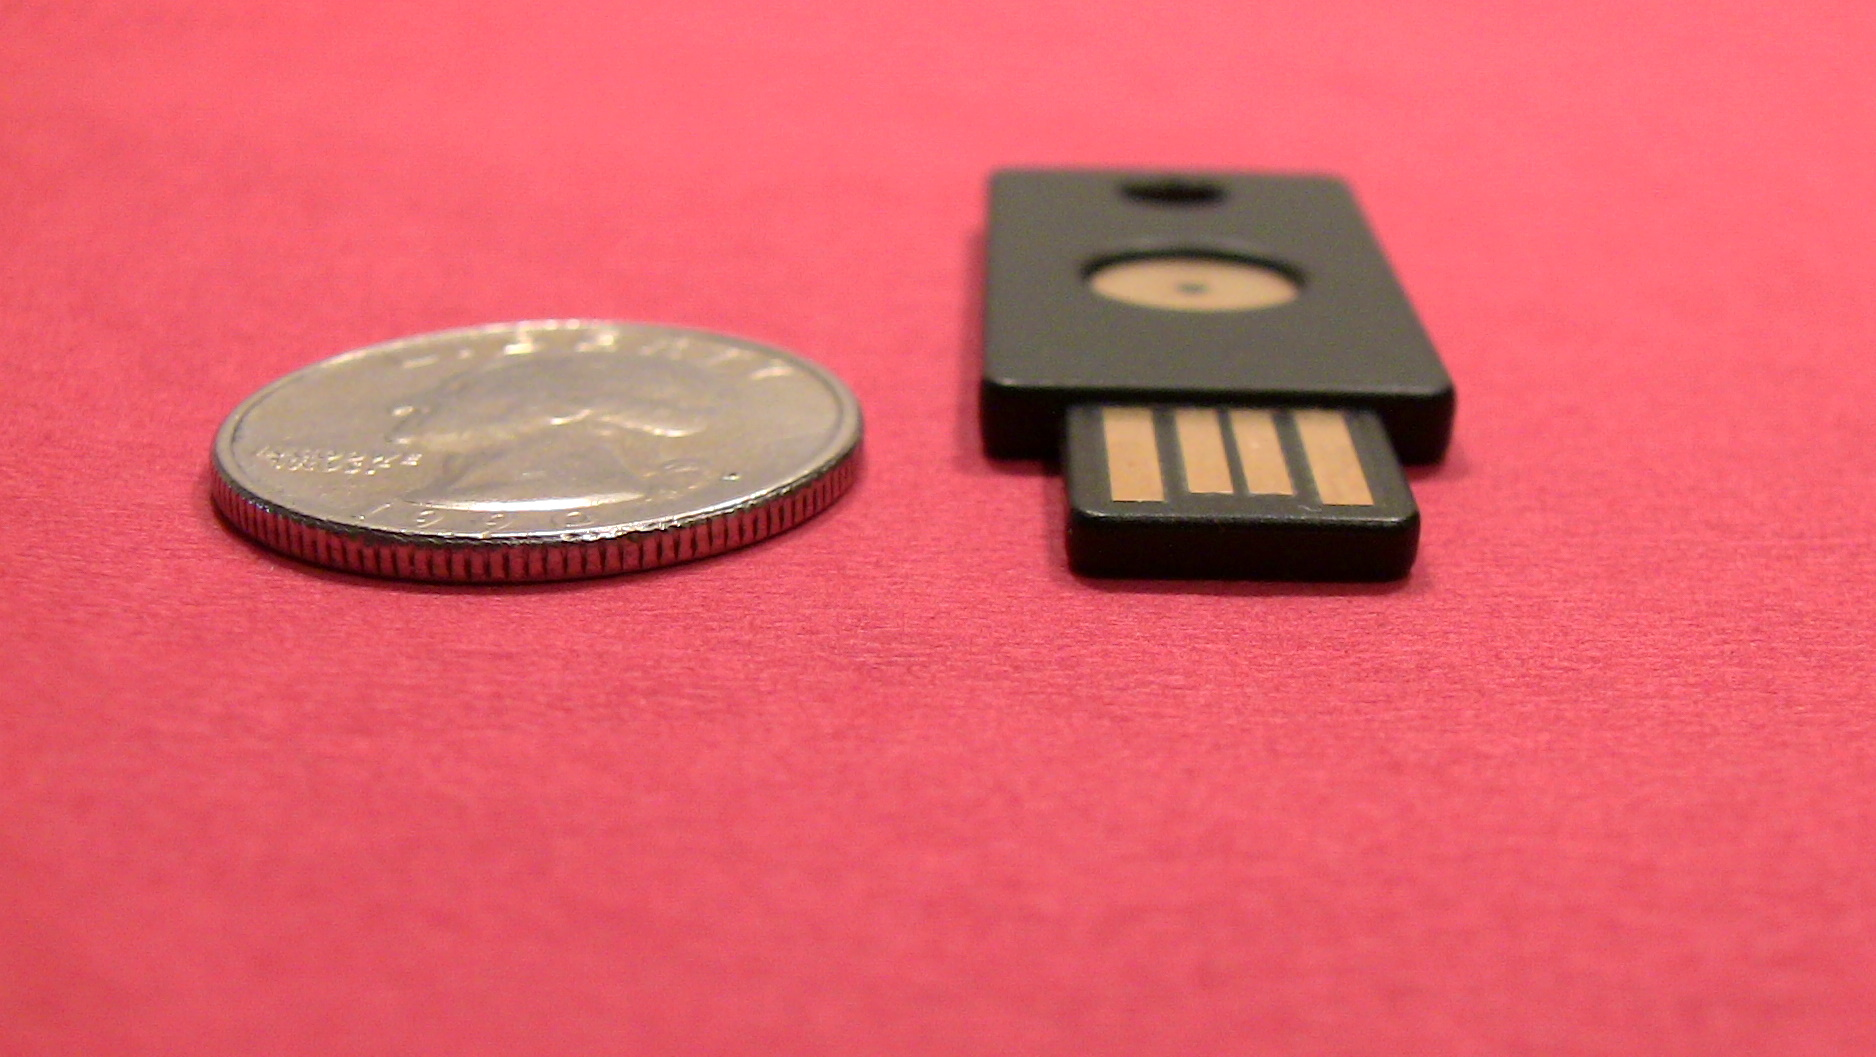 Yubikey Size Comparison